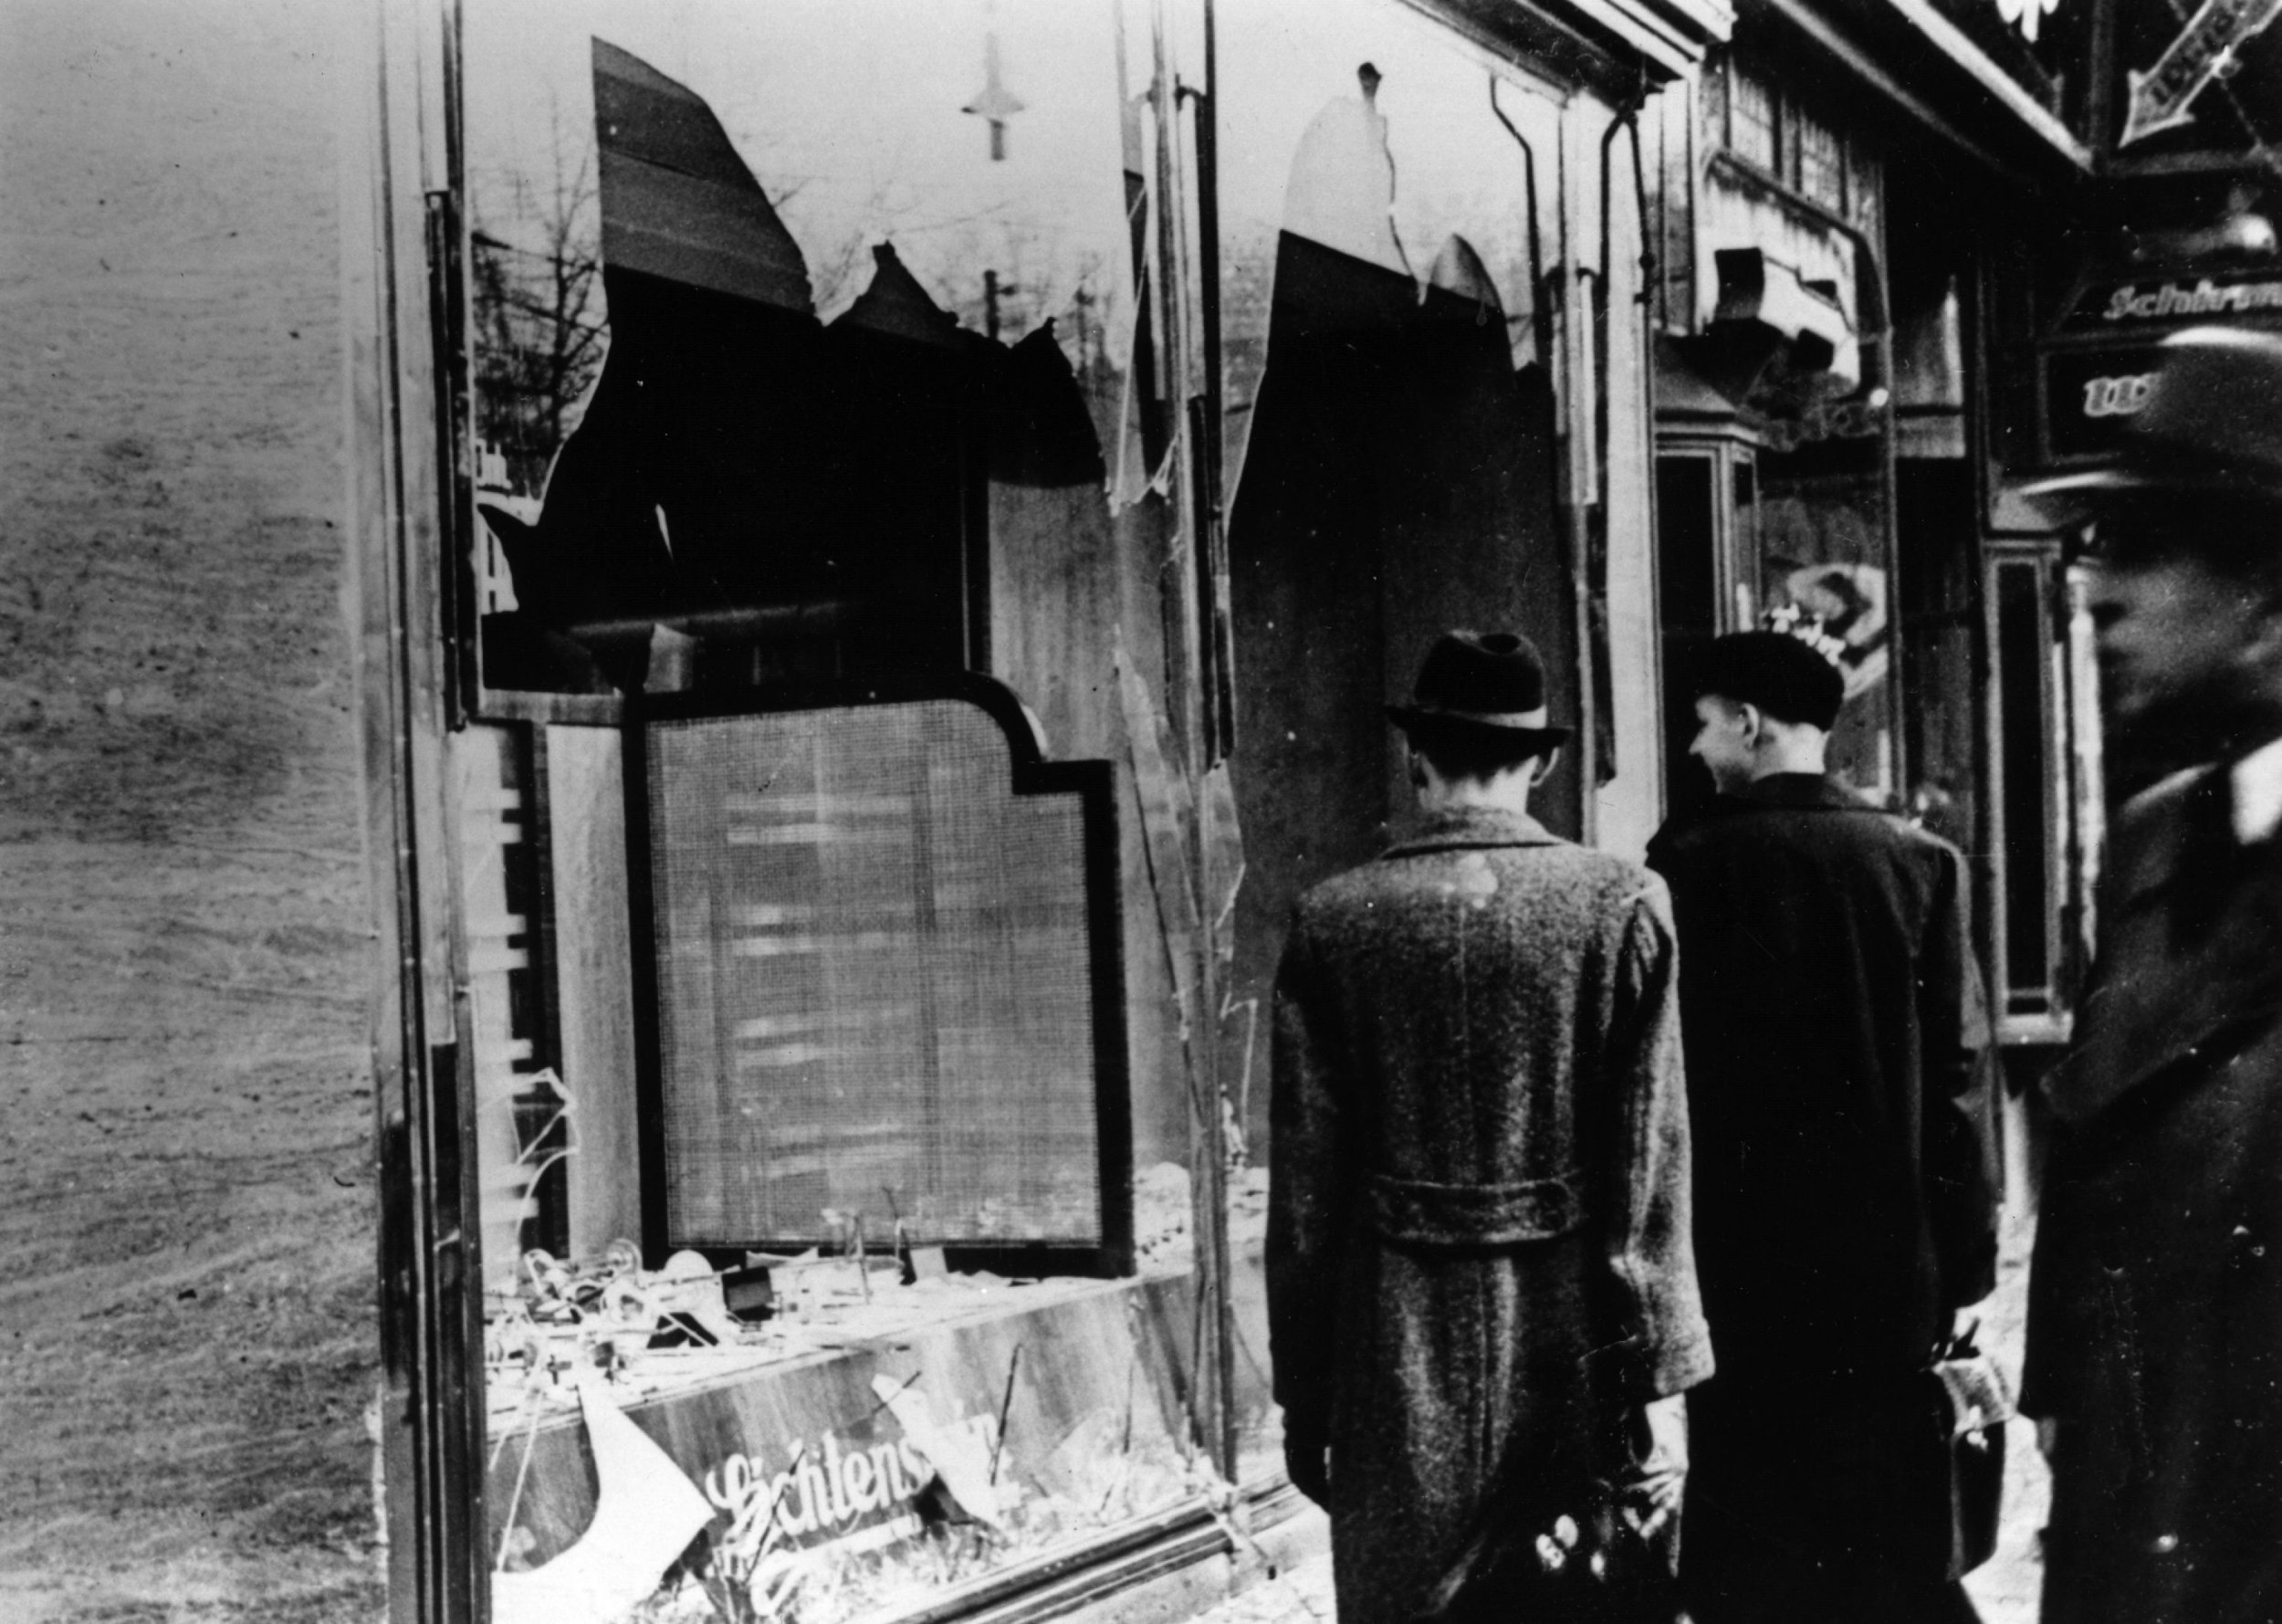 kristallnacht international holocaust remembrance day hitler timeline of events